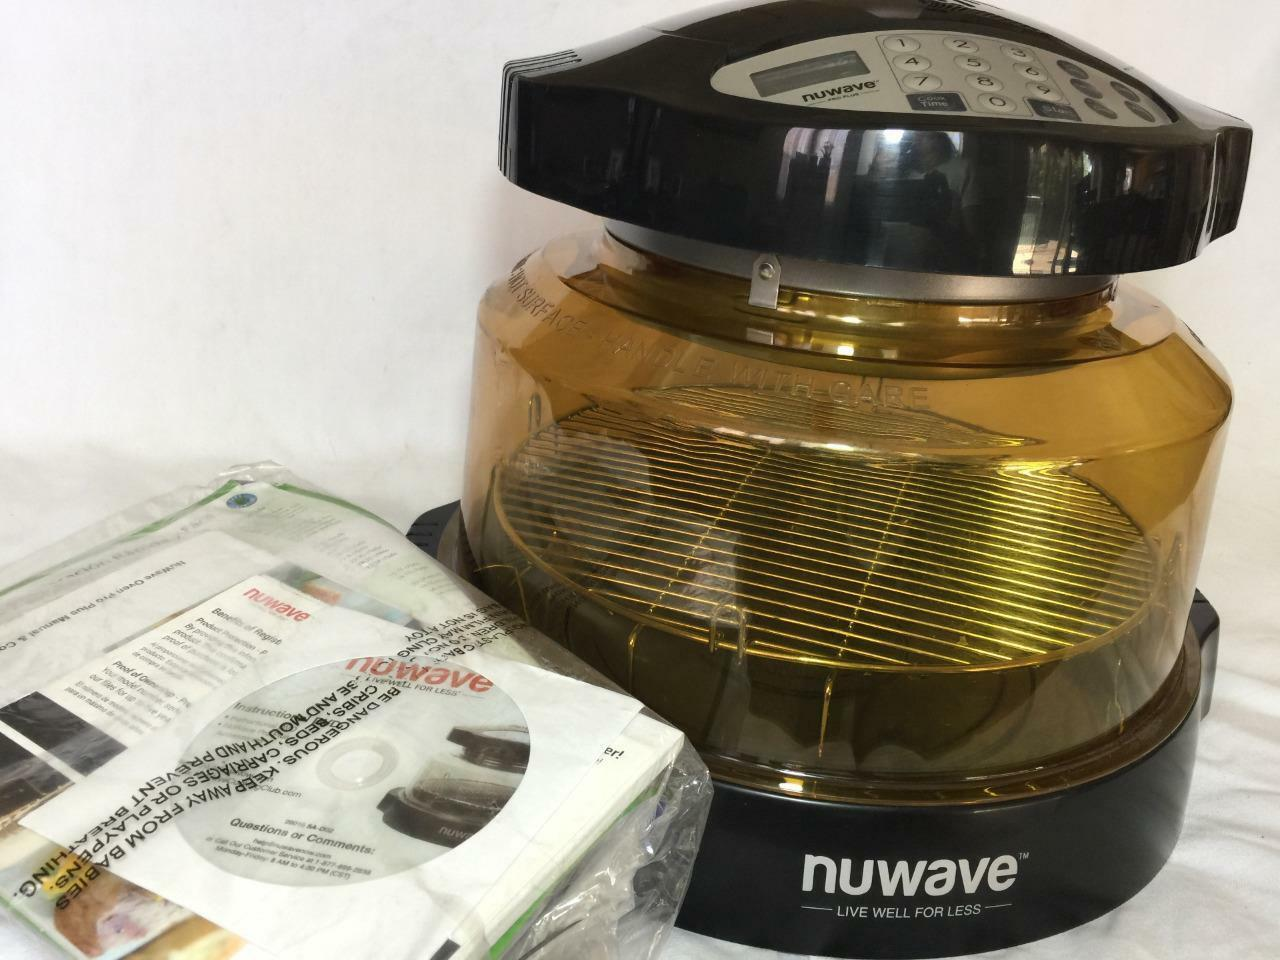 Digital HEARTHWARE NUWAVE PRO PLUS INFRARED Convection OVEN 20601 New